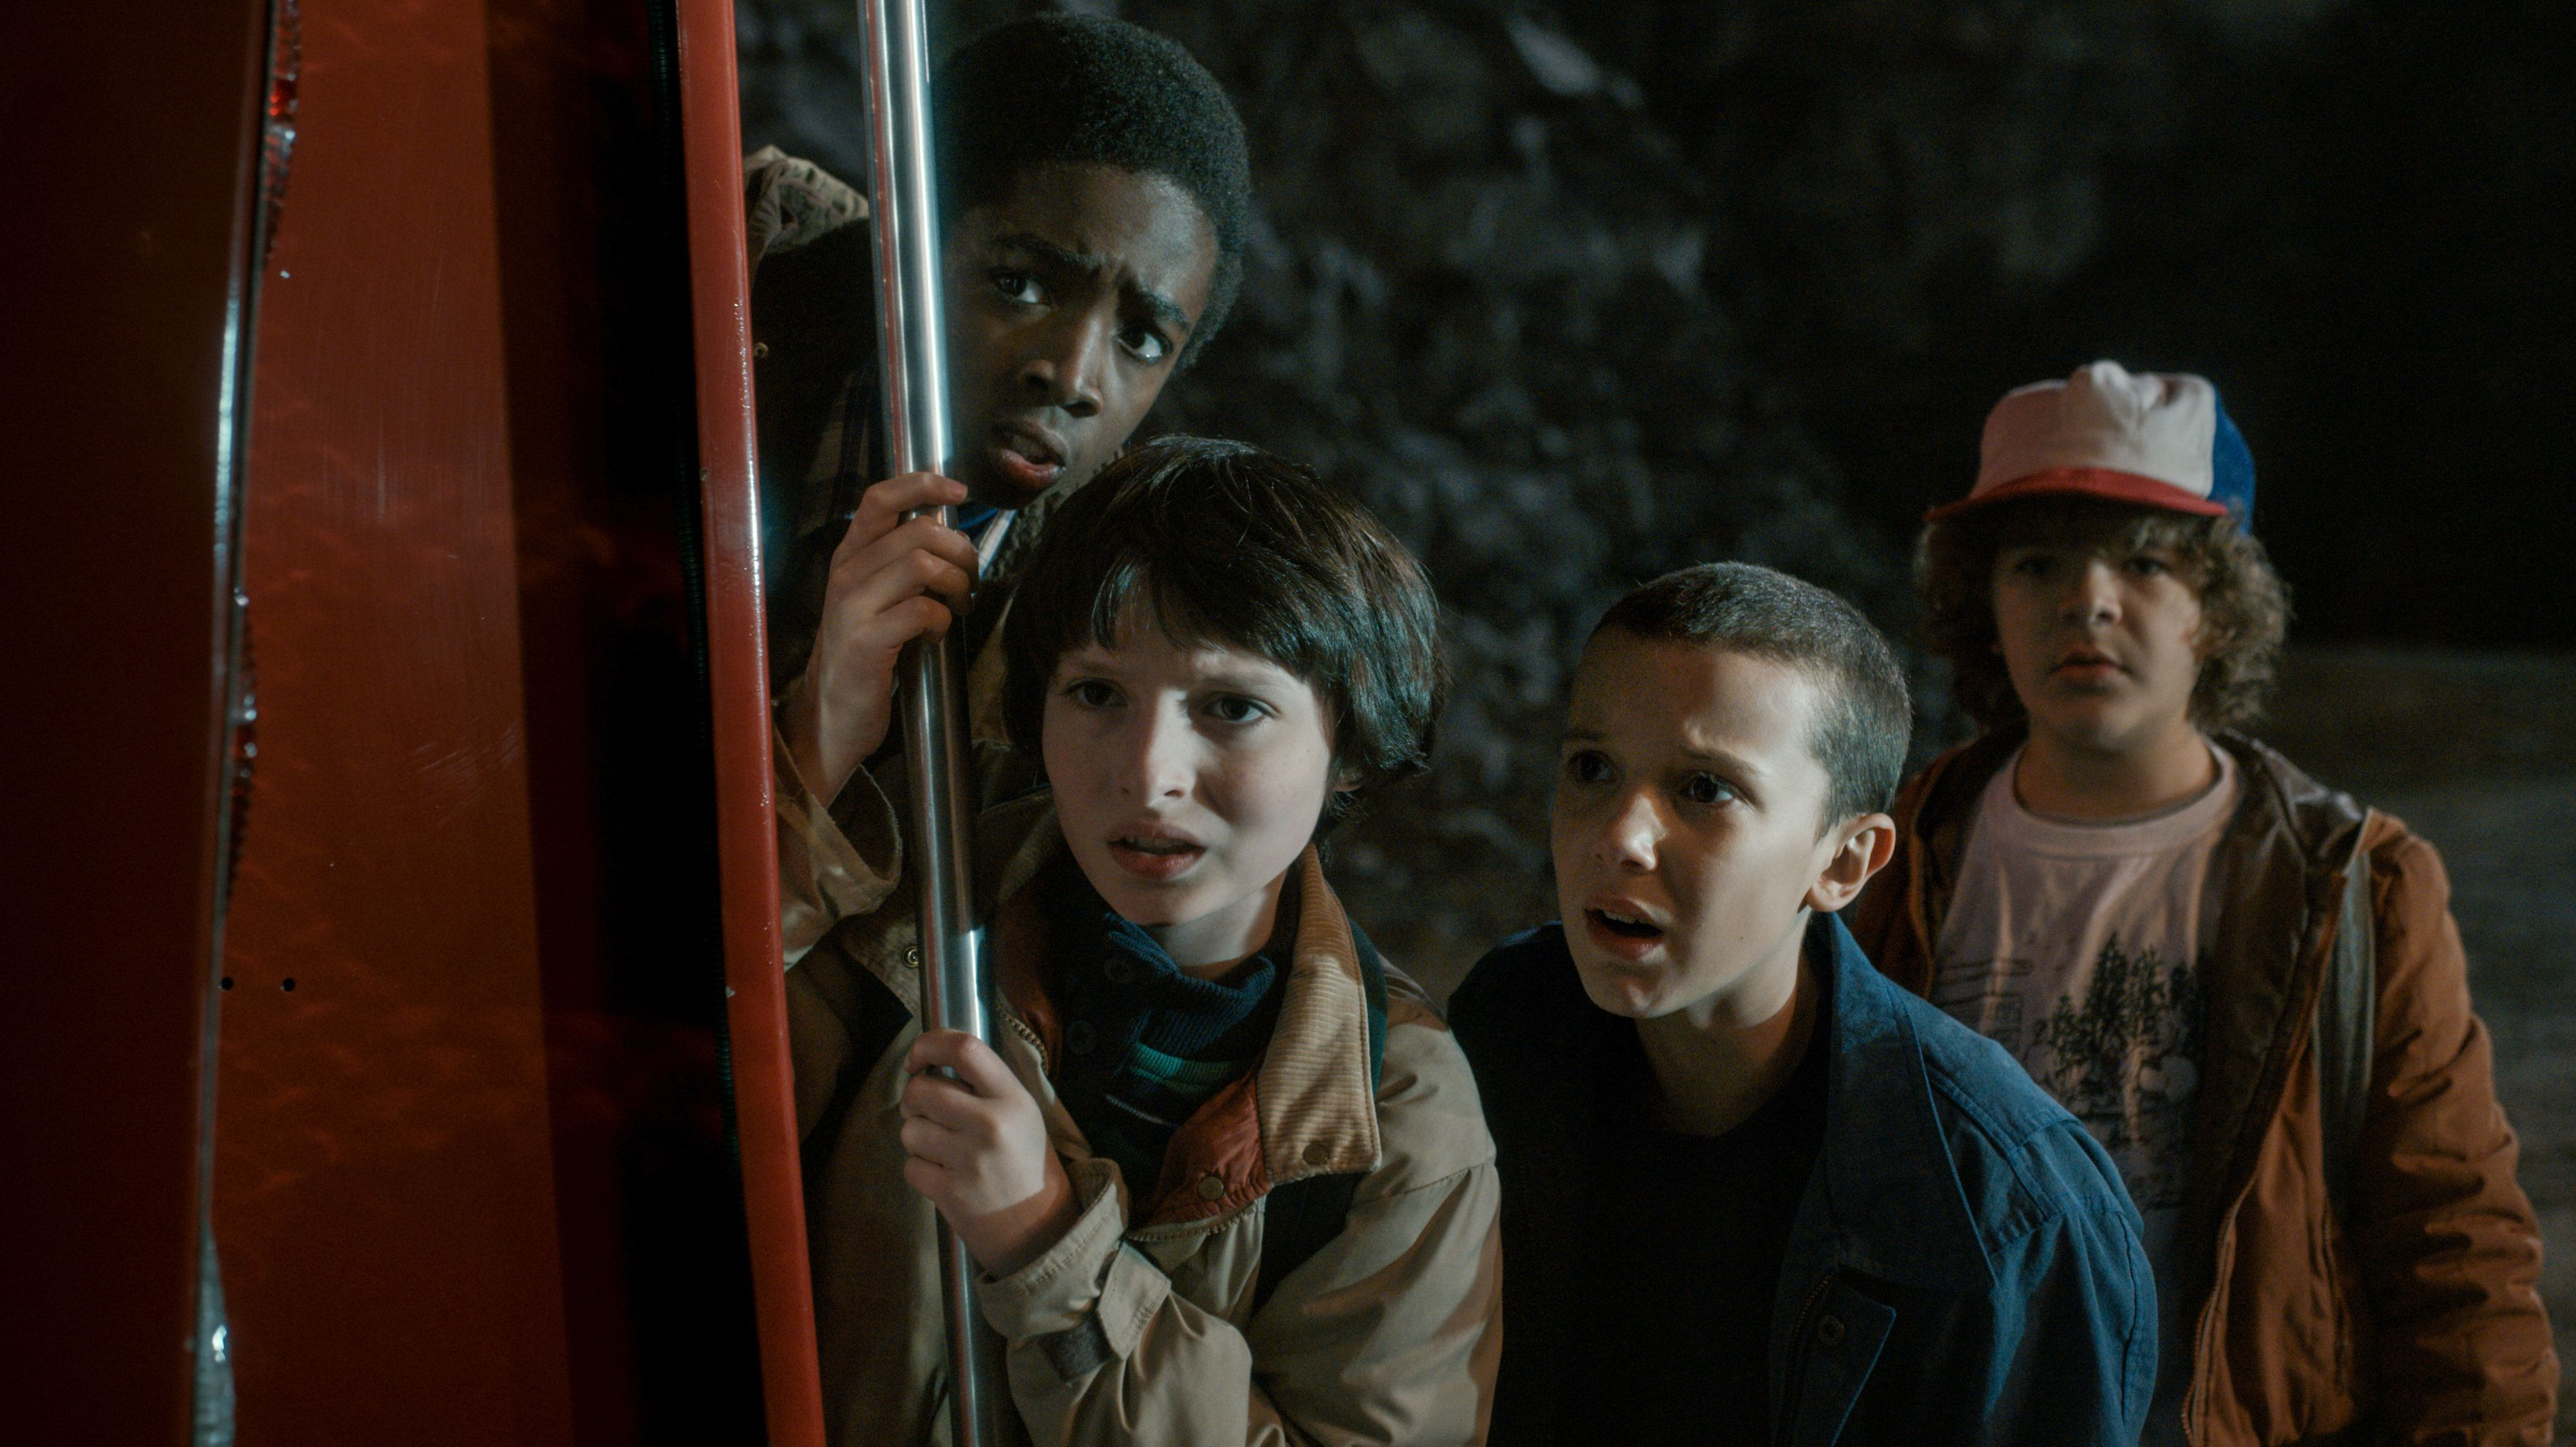 It's back! Netflix have confirmed Stranger Things 2 release date